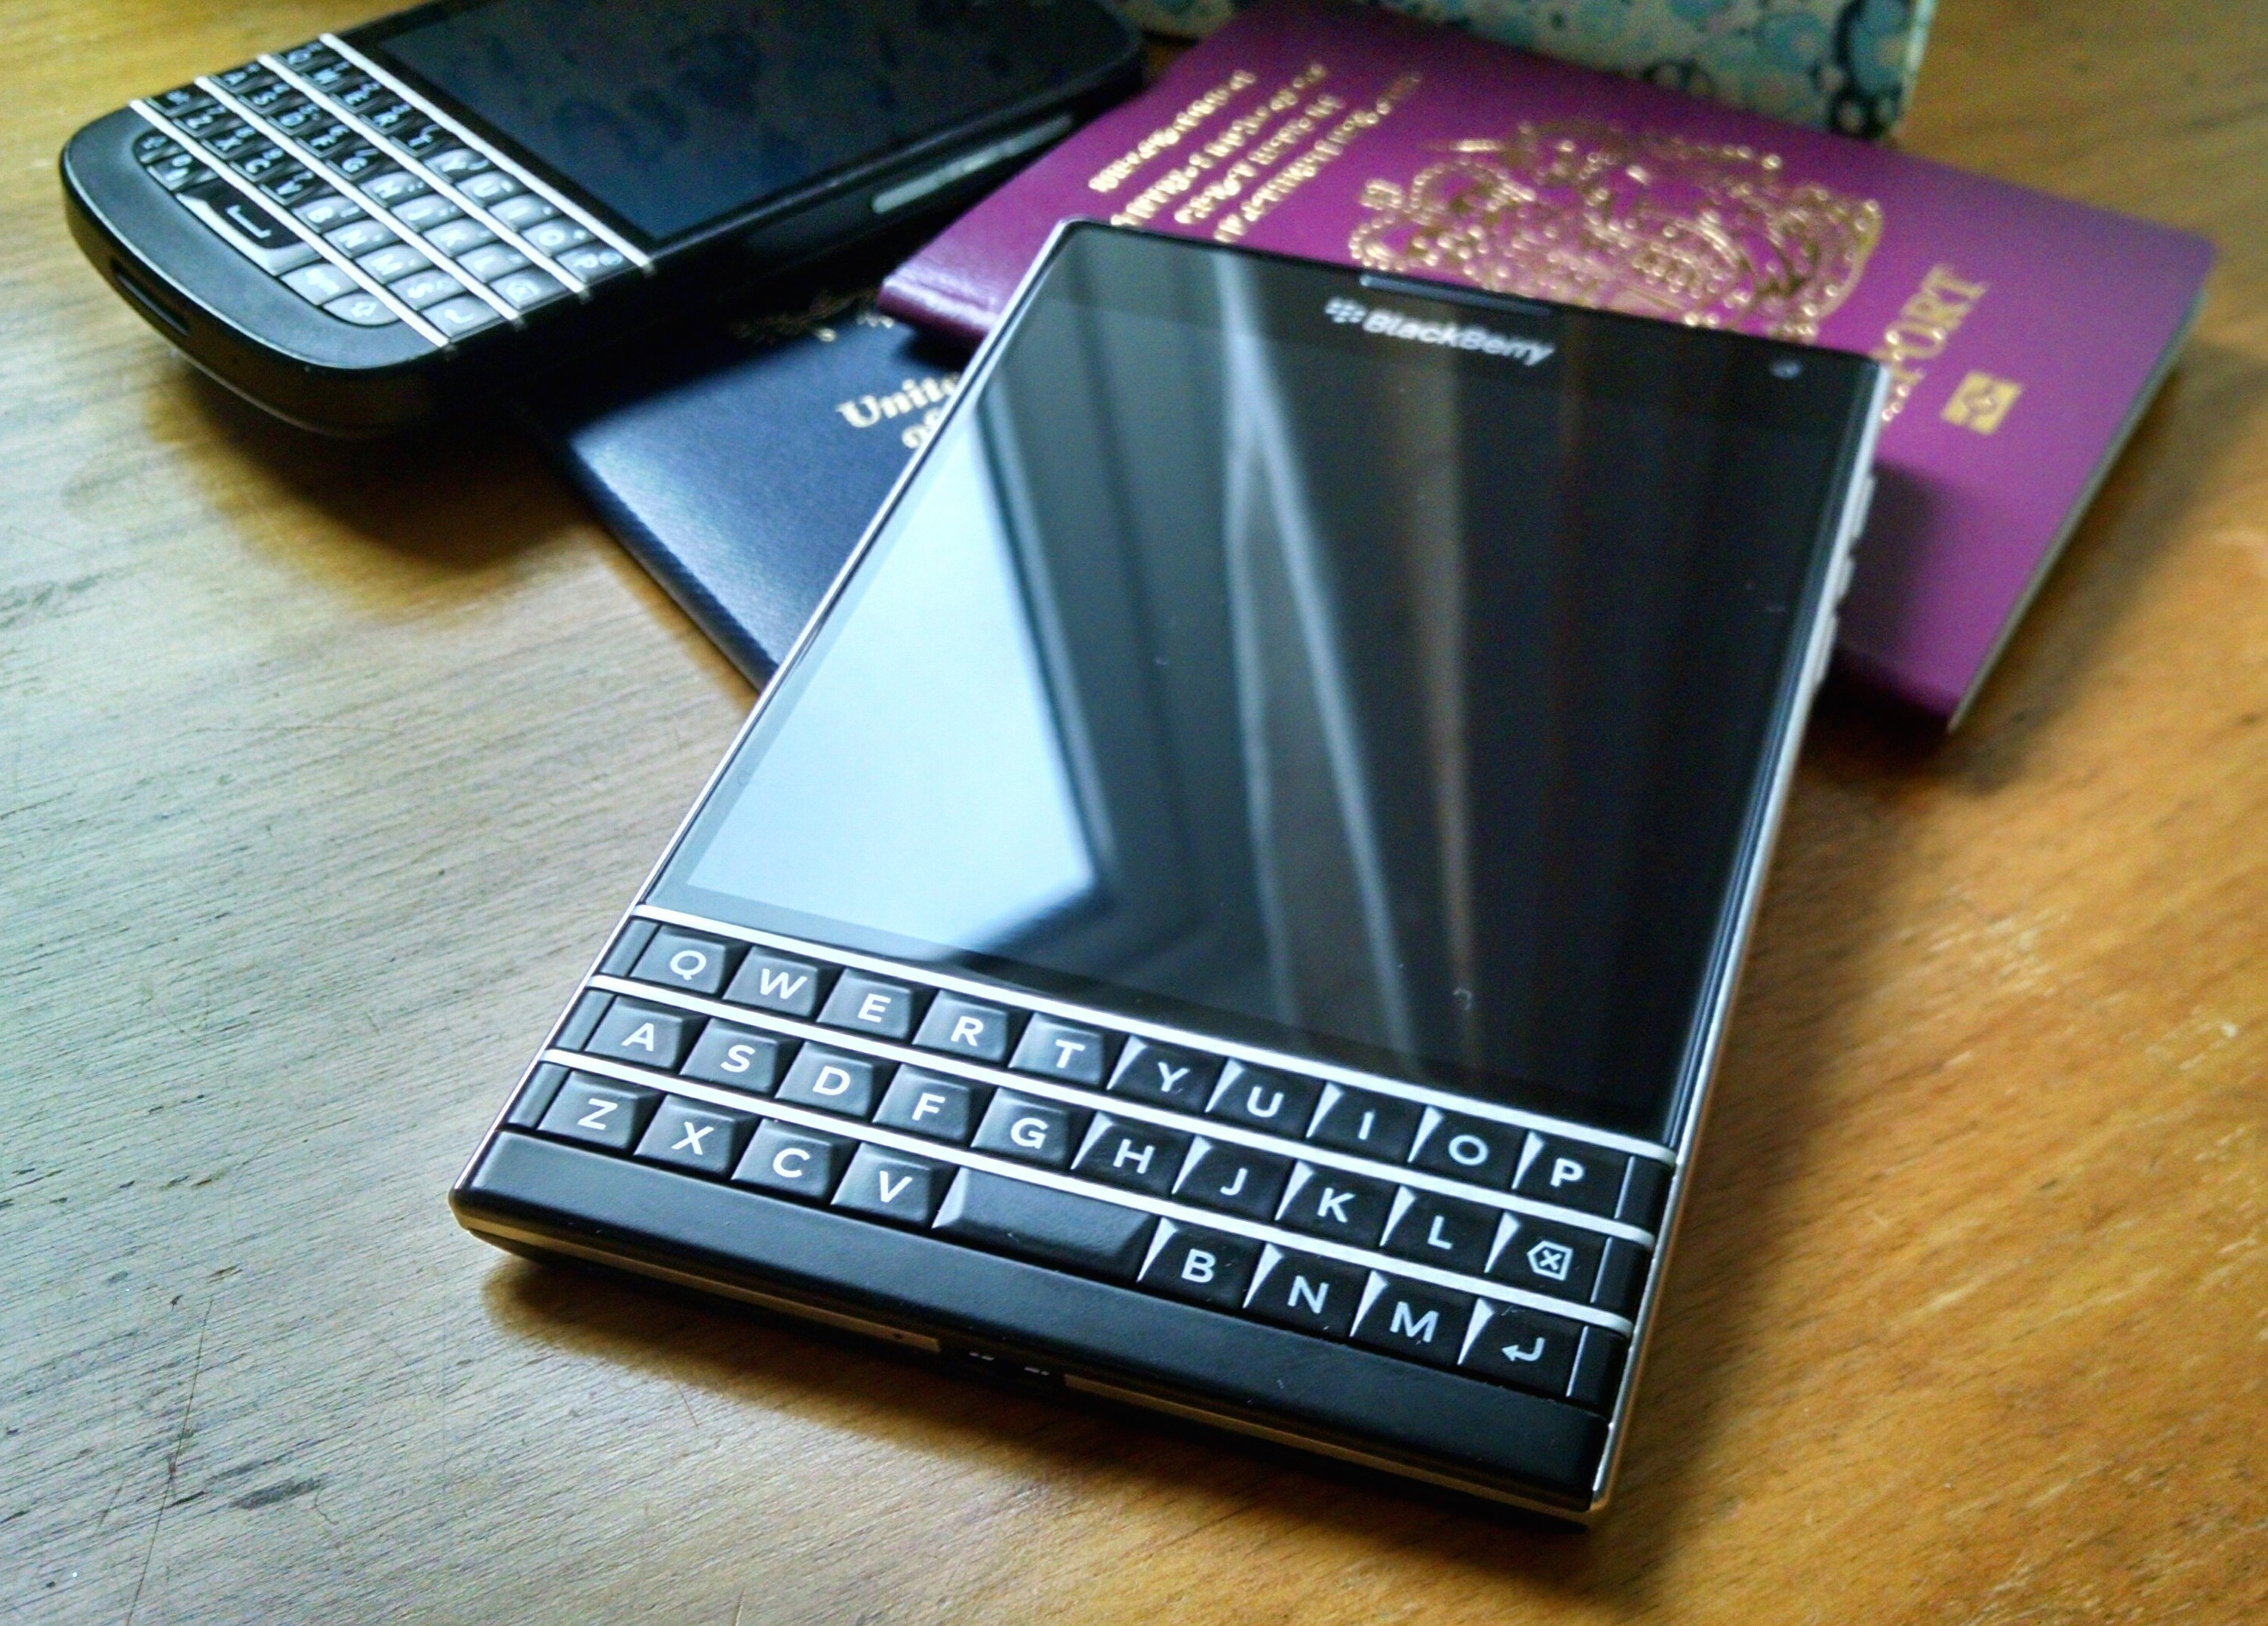 Blackberry Passport on a desk